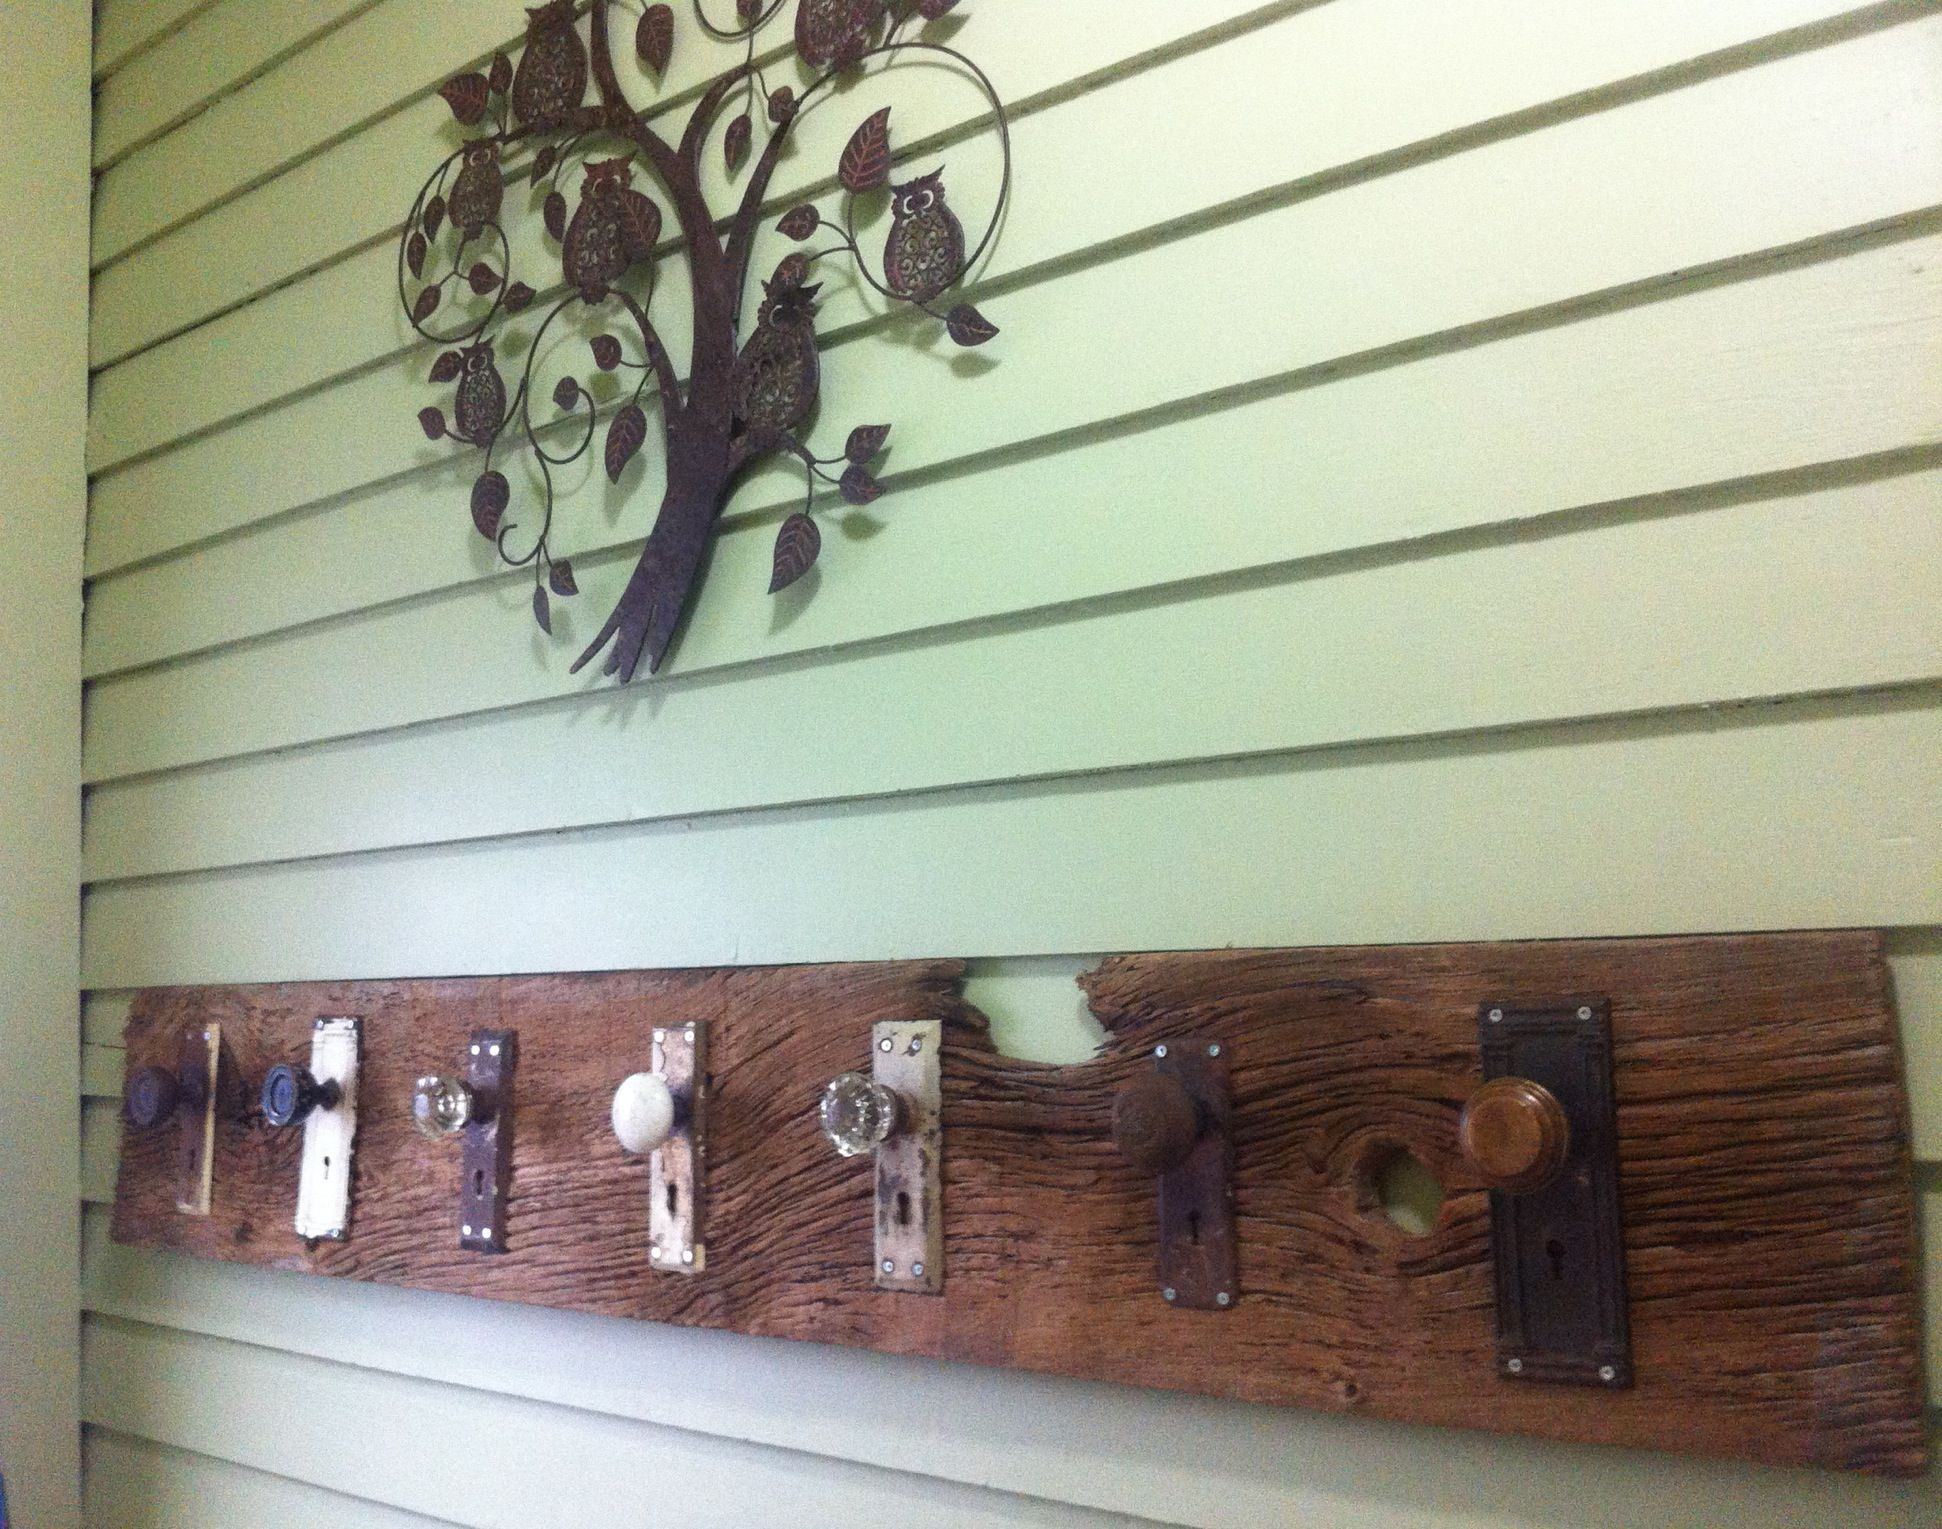 Antique door knobs on new doors - New Diy Coat Rack Old Barn Board With Antique Door Knobs Screwed Into The Board